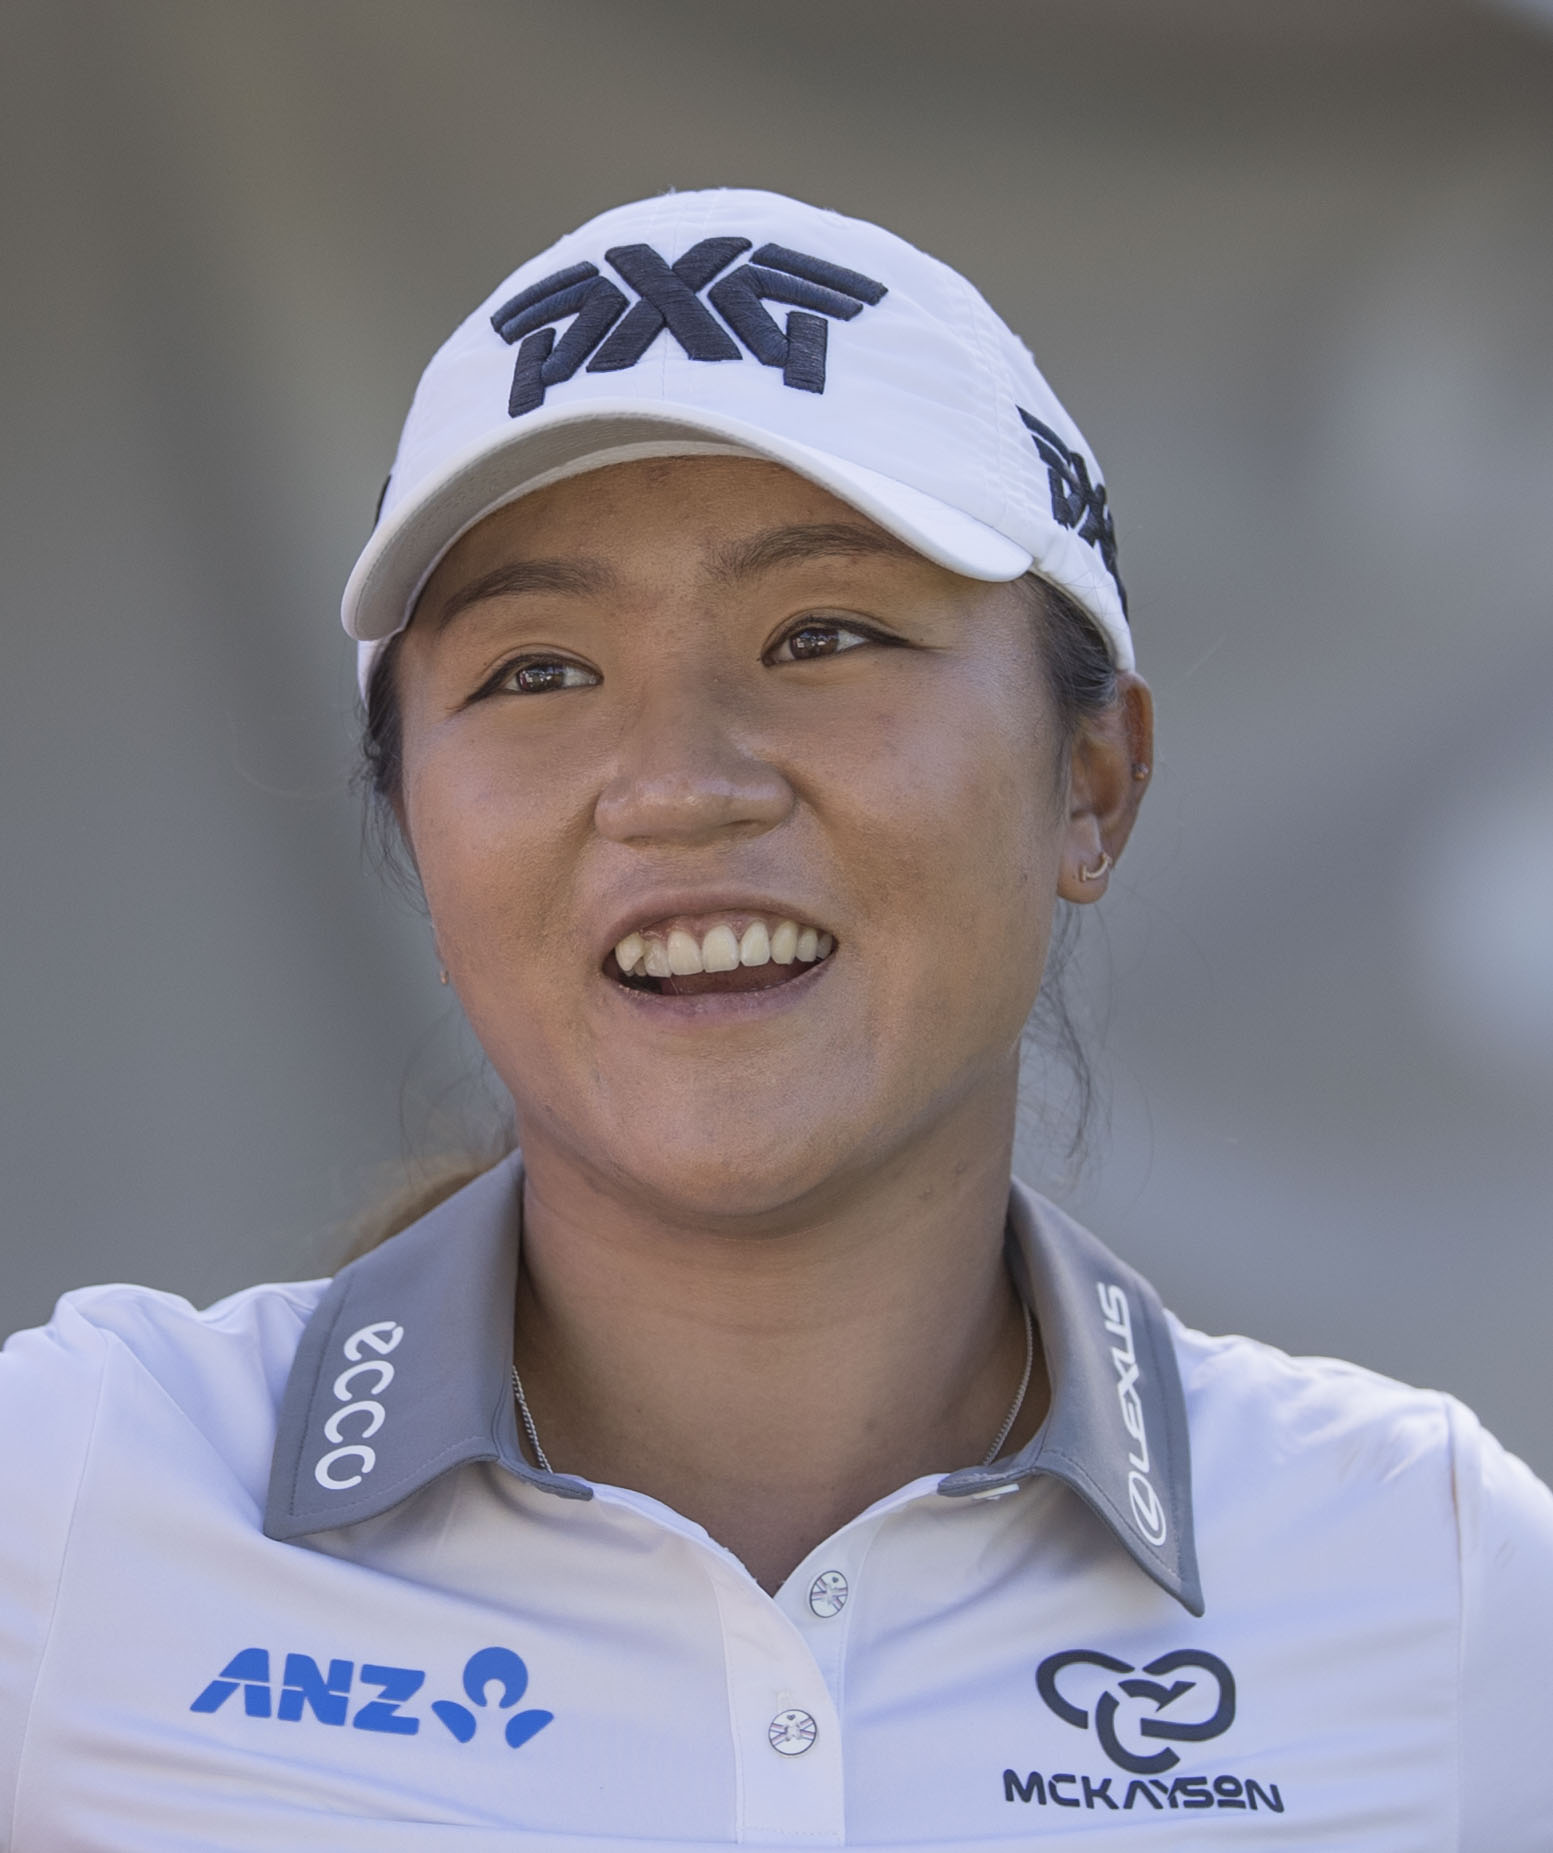 The 21-year old daughter of father Kim Hyon and mother Tina Hyon Lydia Ko in 2018 photo. Lydia Ko earned a  million dollar salary - leaving the net worth at 4 million in 2018